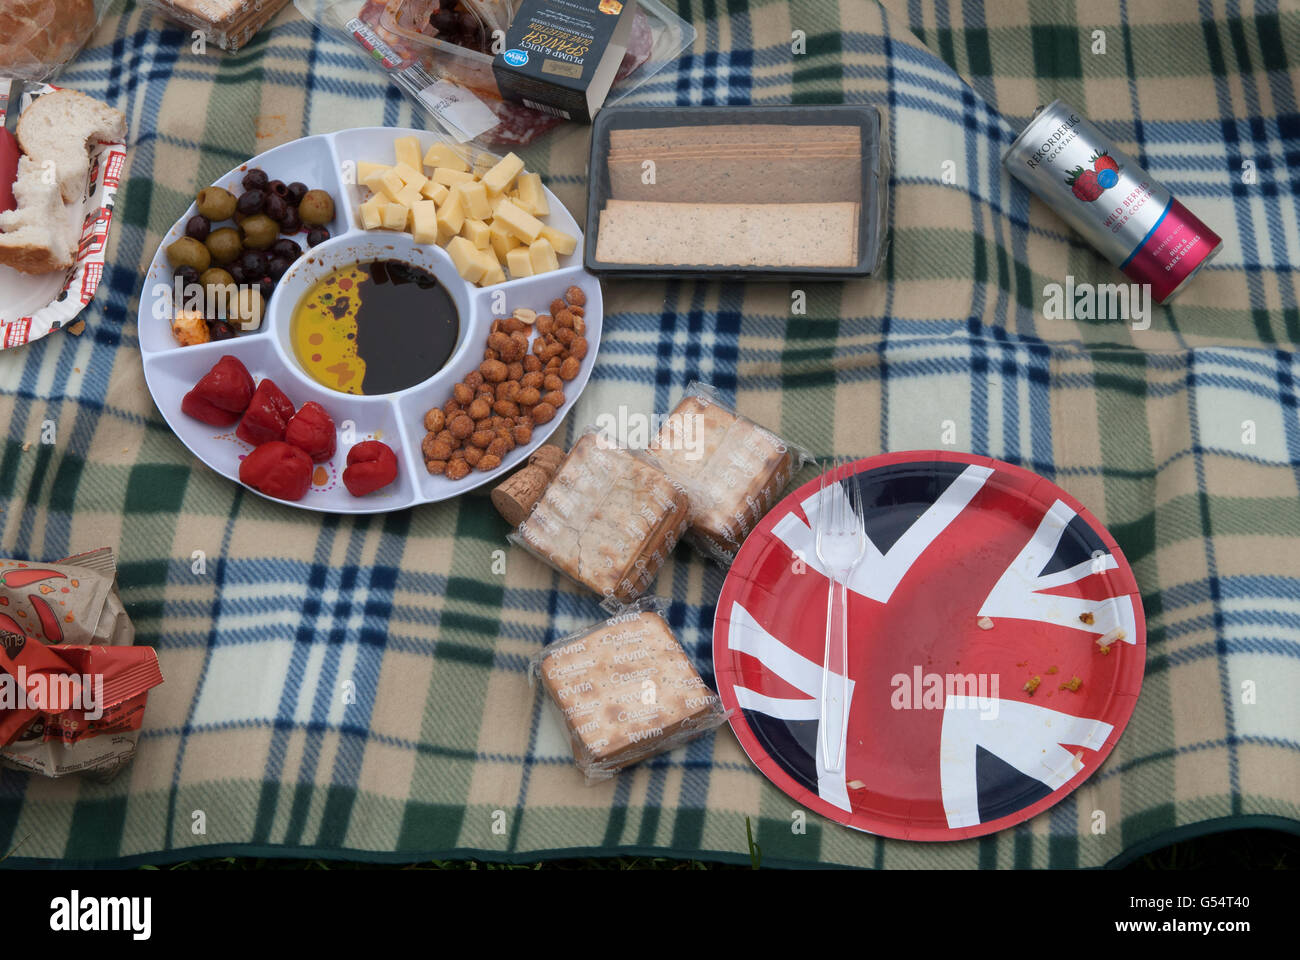 Picnic Uk shop bought food plastic wrappers spread out on picnic blanket HOMER SYKES Stock Photo